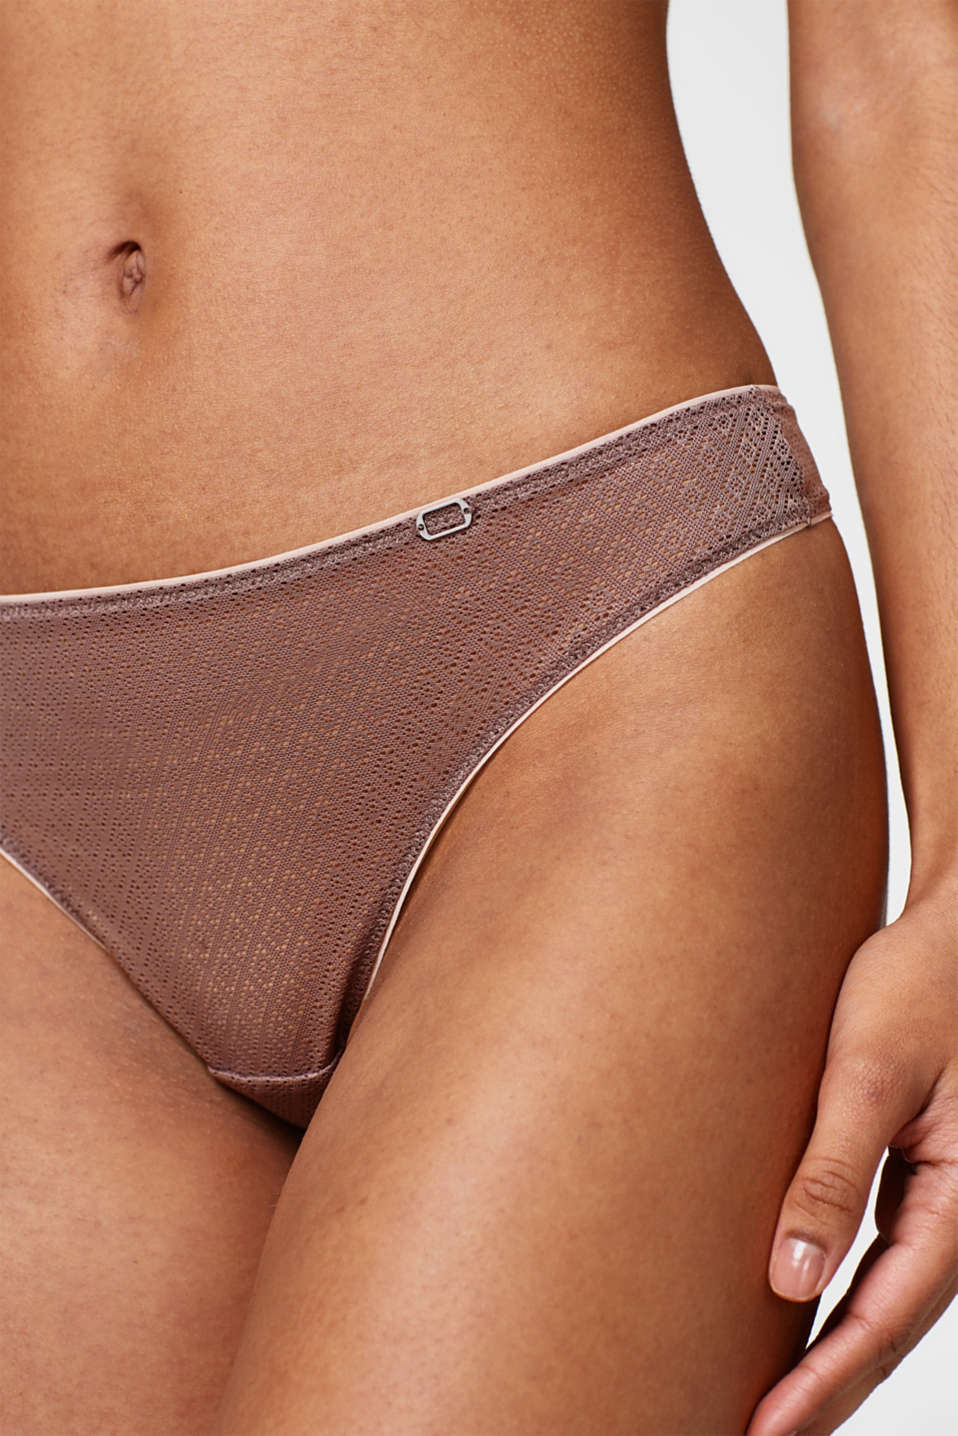 NYE hipster thong in graphic lace